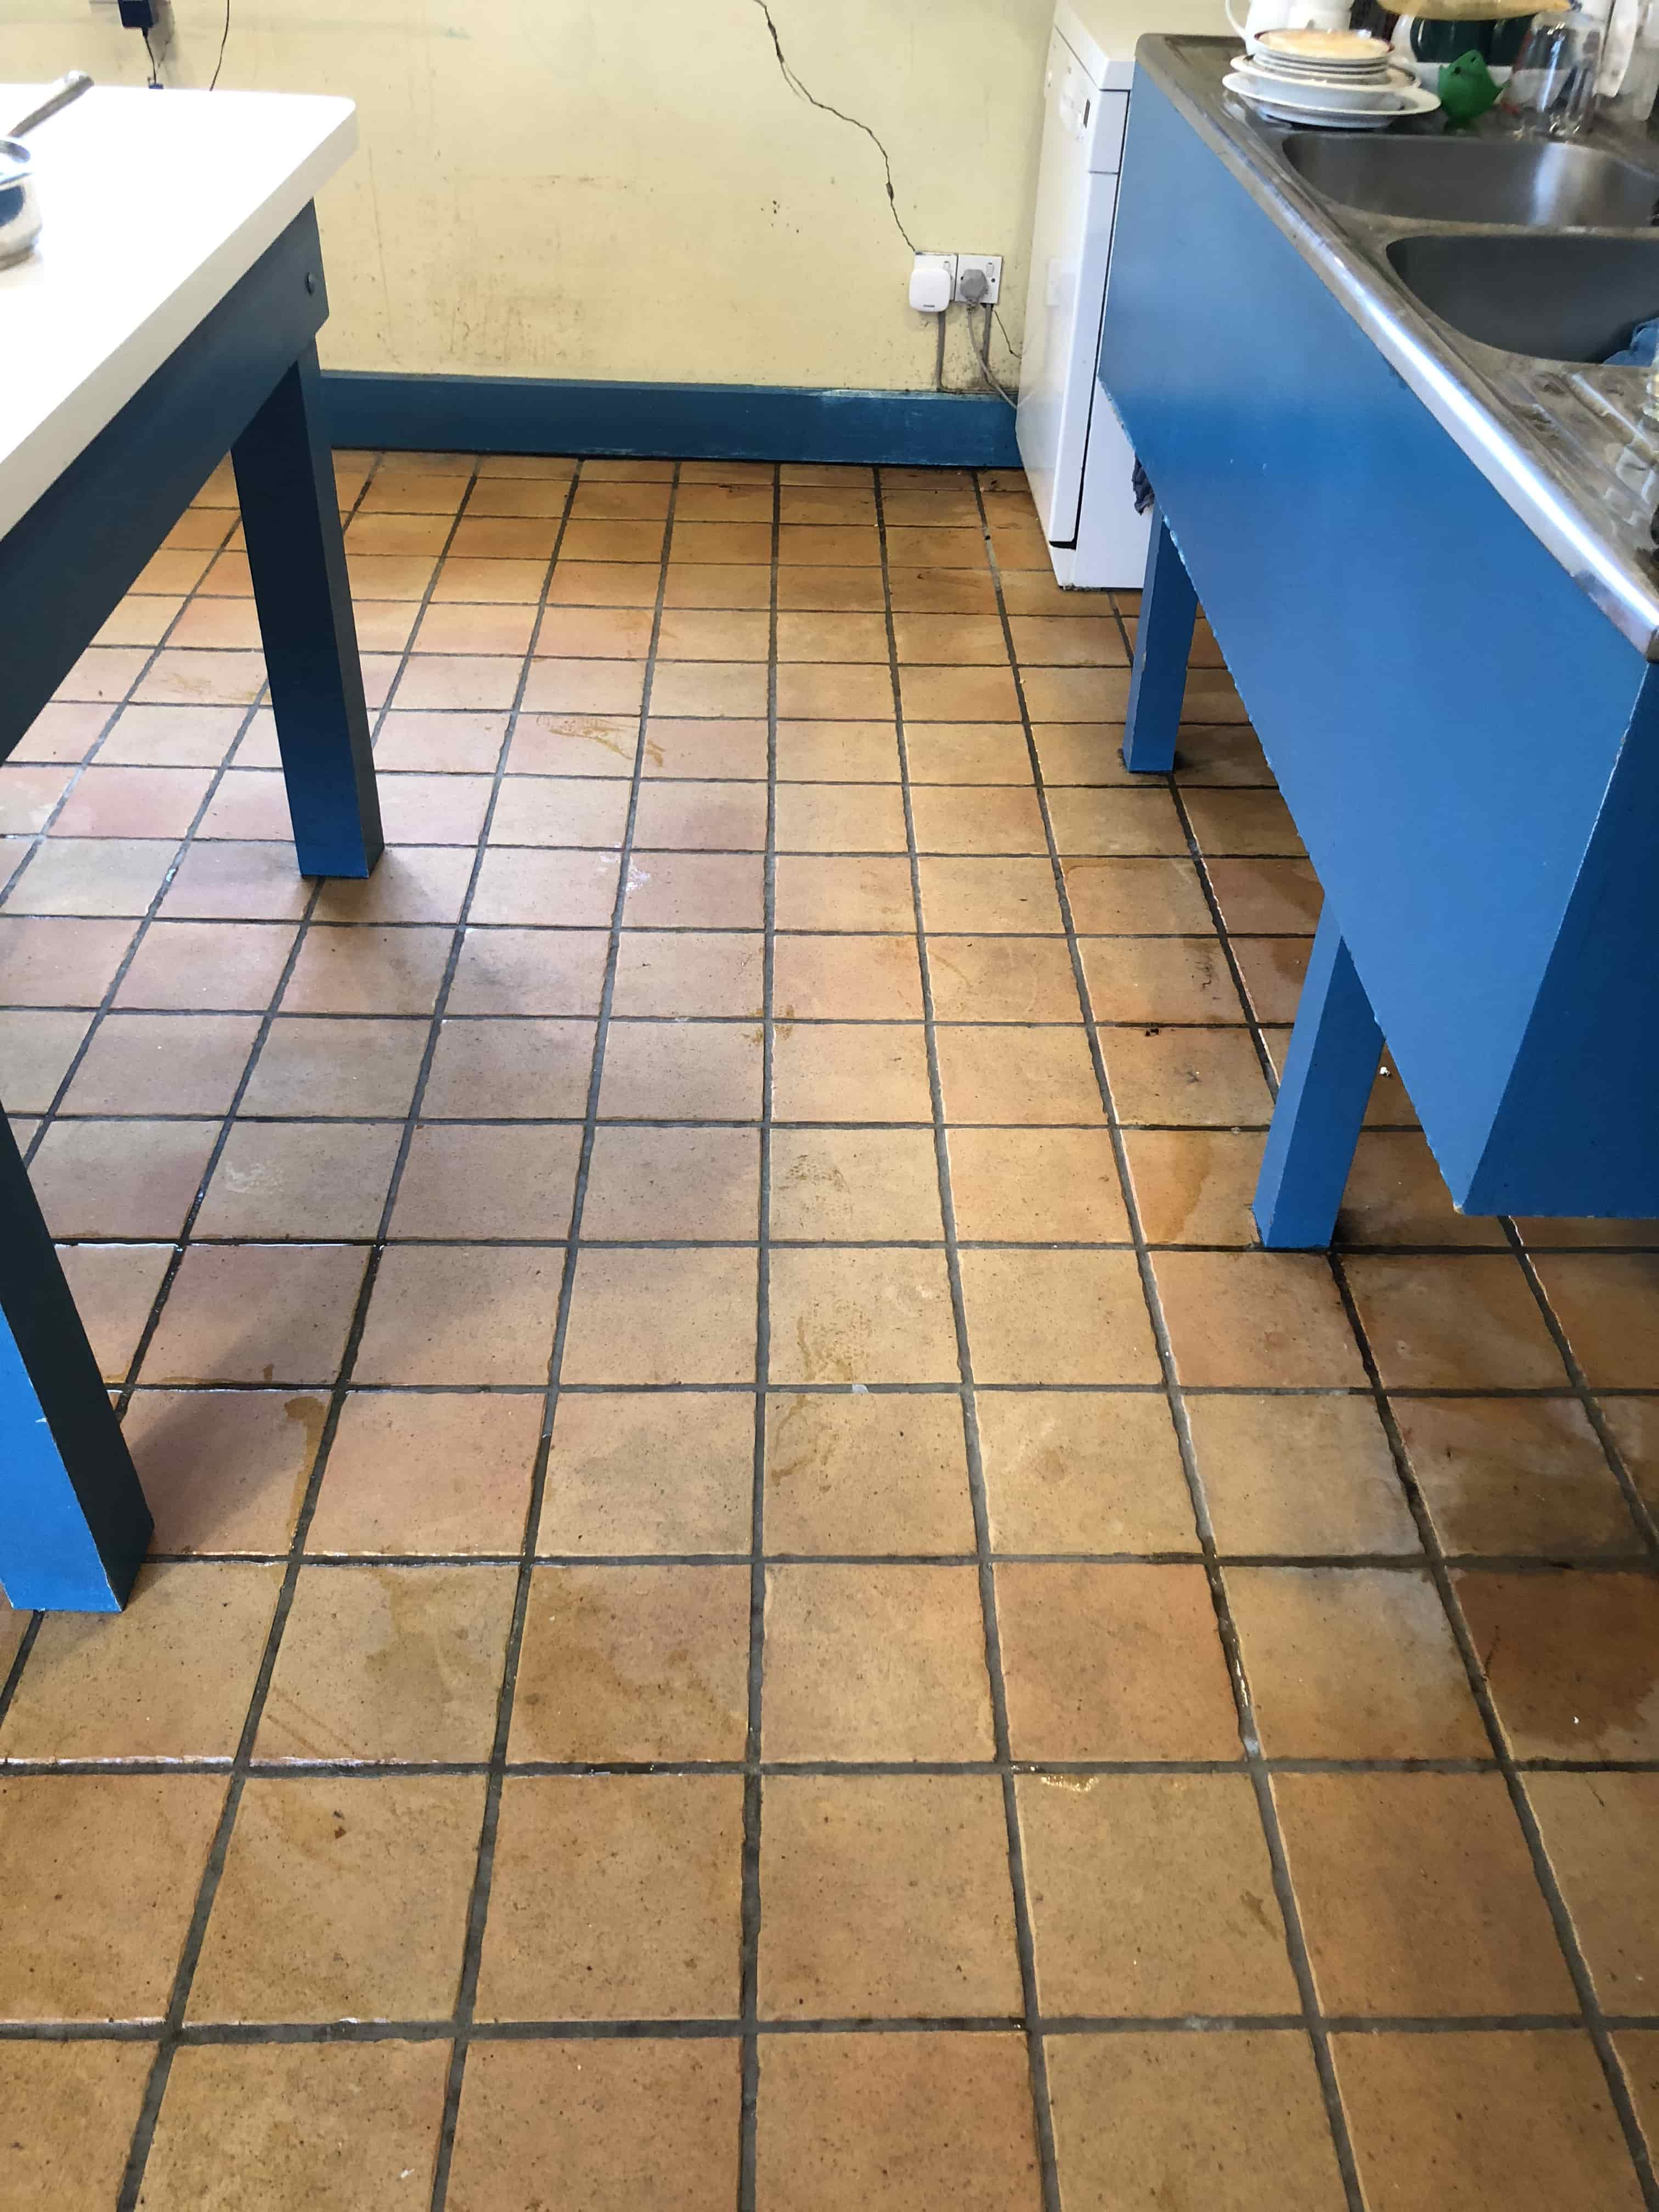 Porcelain Tiled Kitchen Floor Before Cleaning Ely